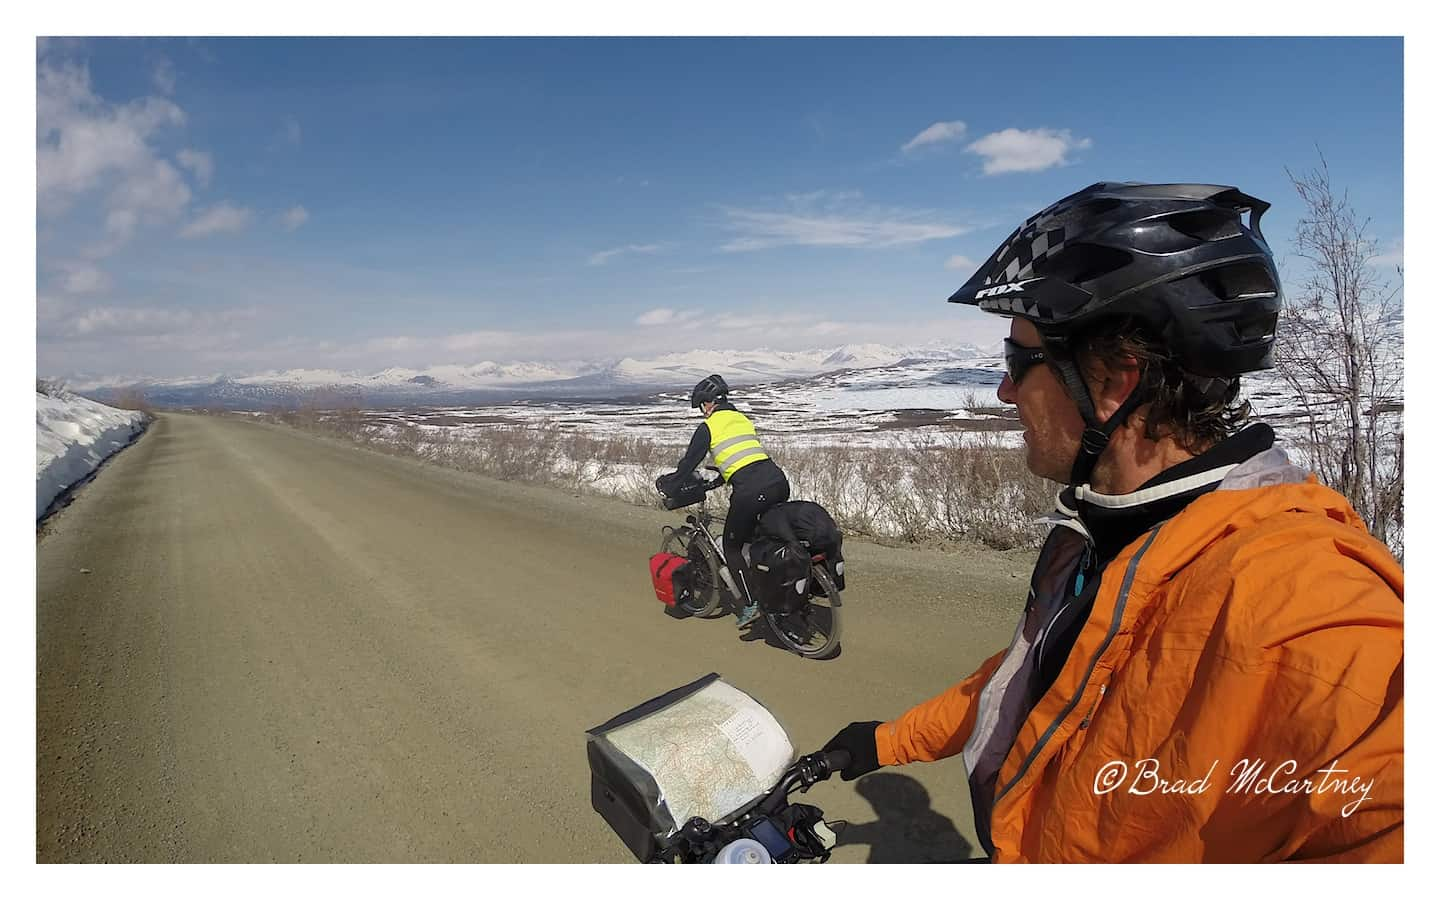 Nearing the top of the pass on the Denali Hwy